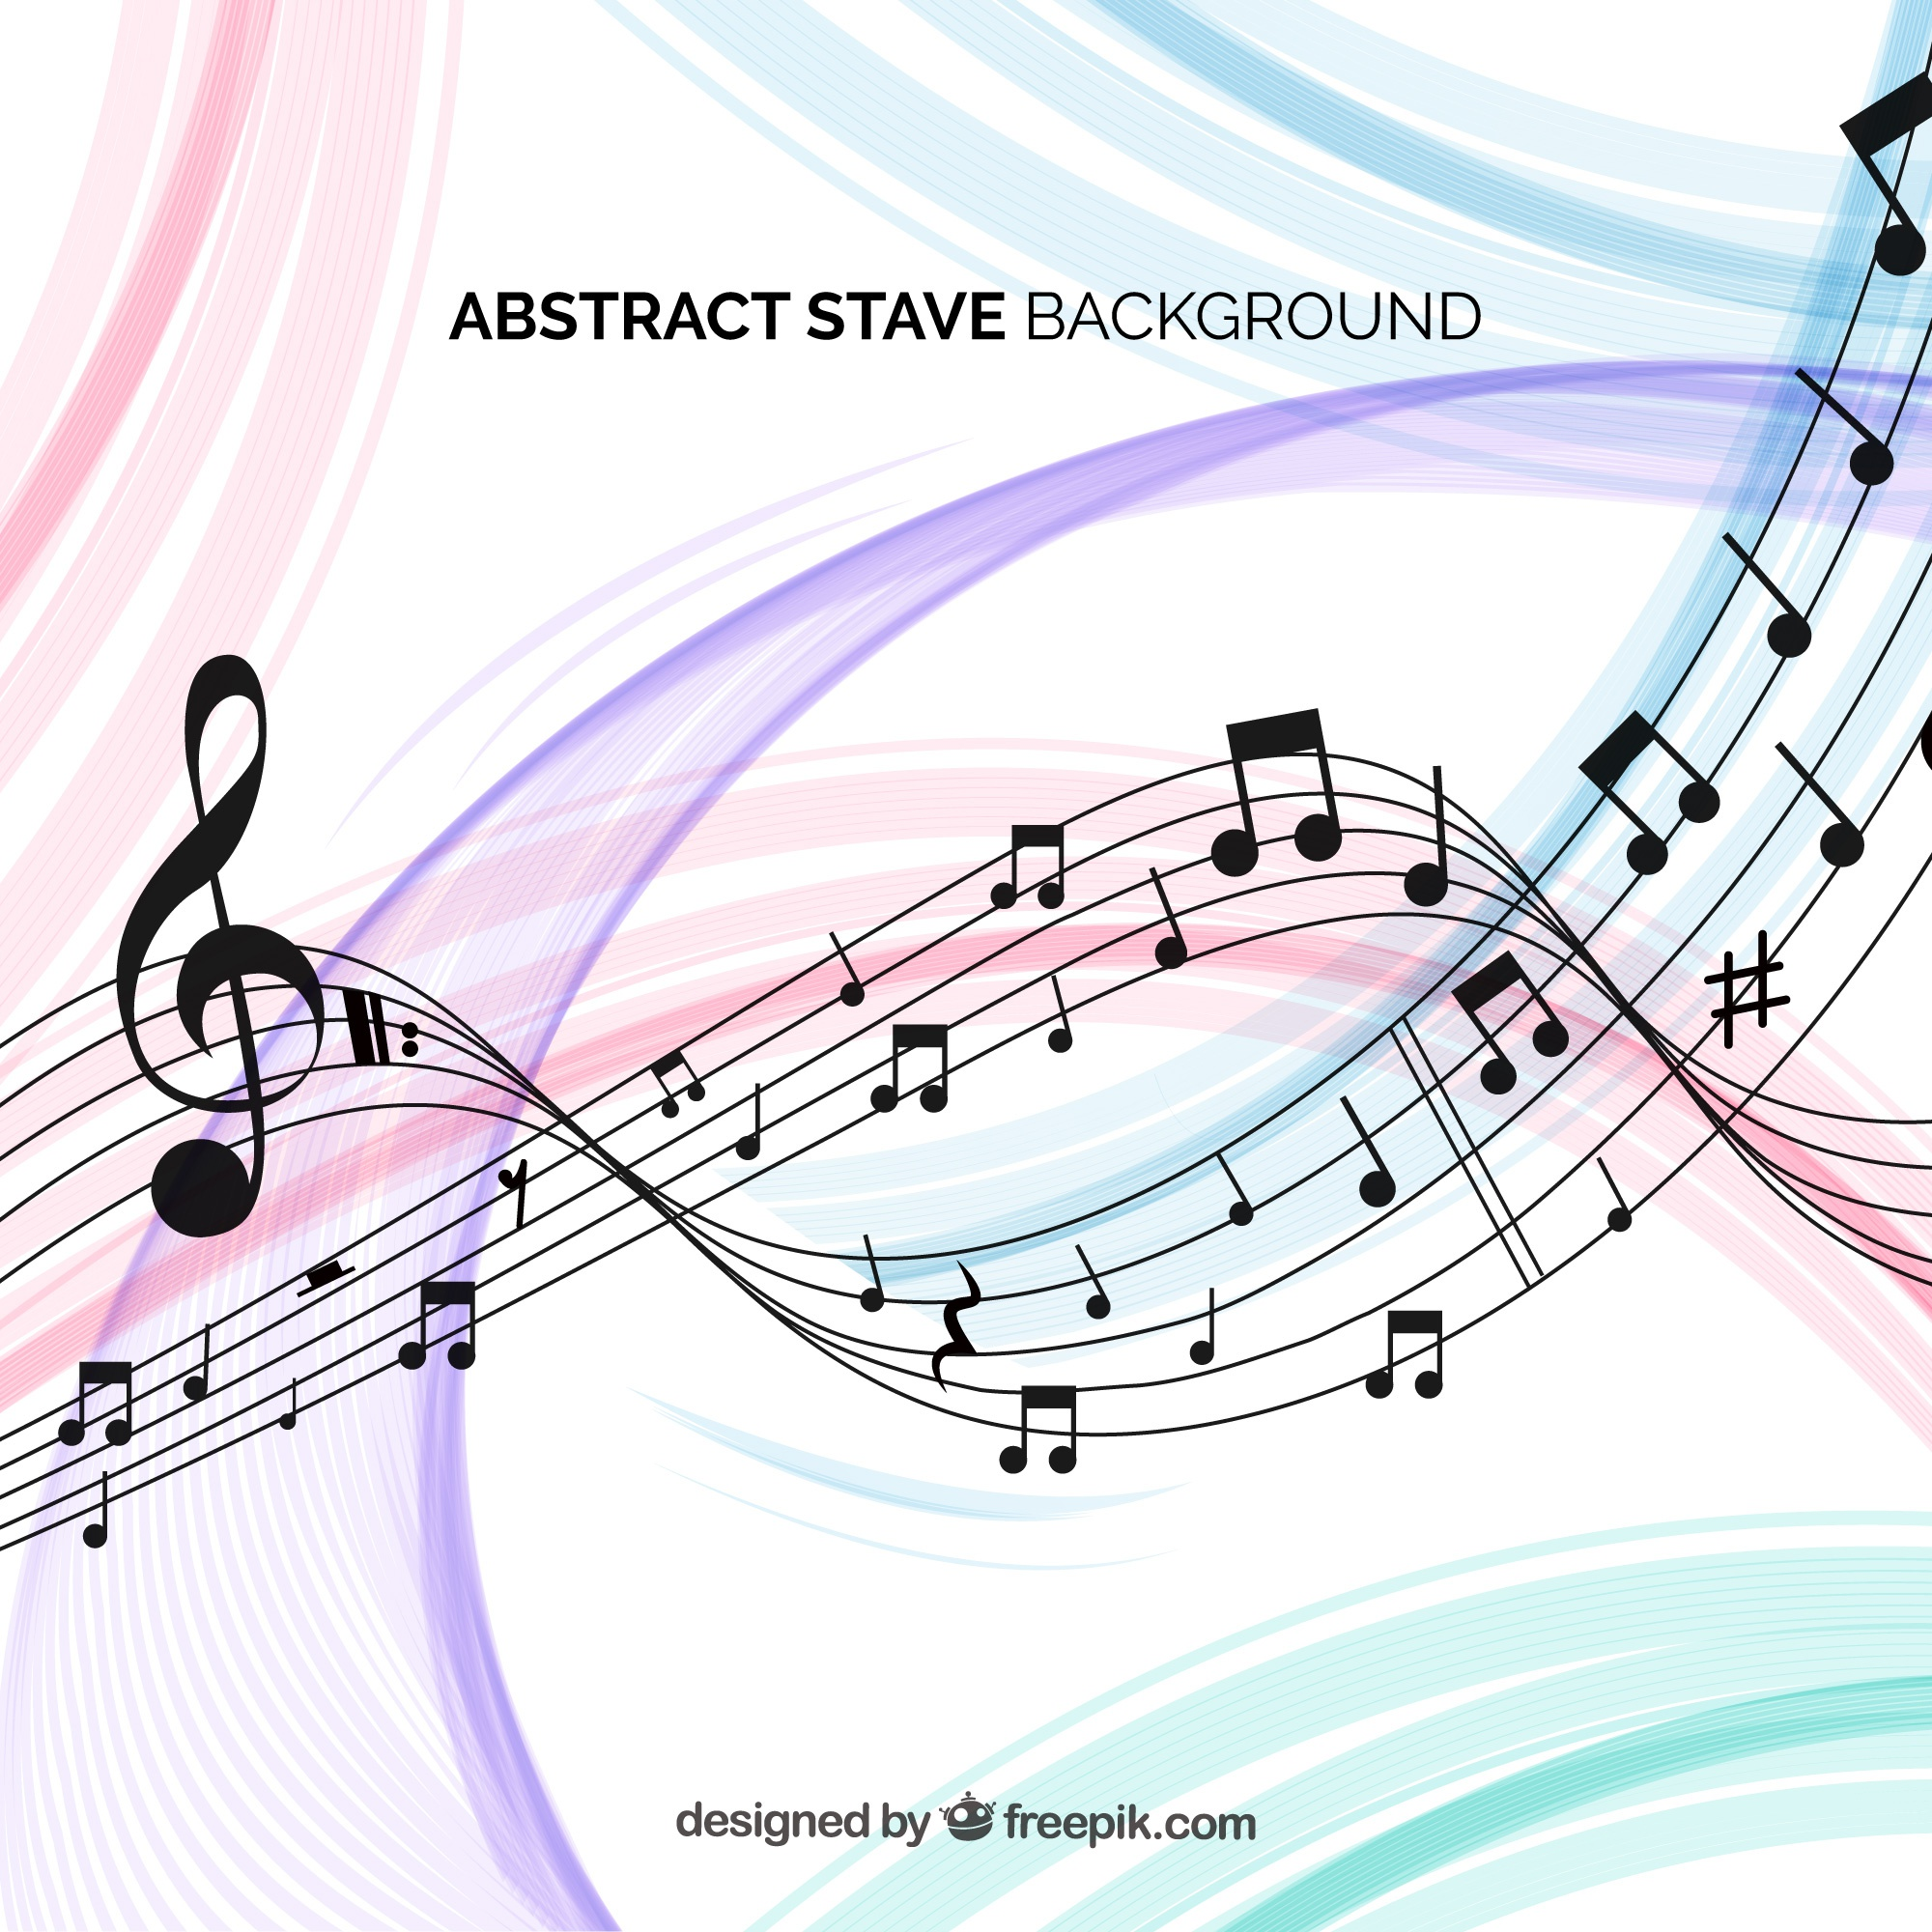 Abstract stave background